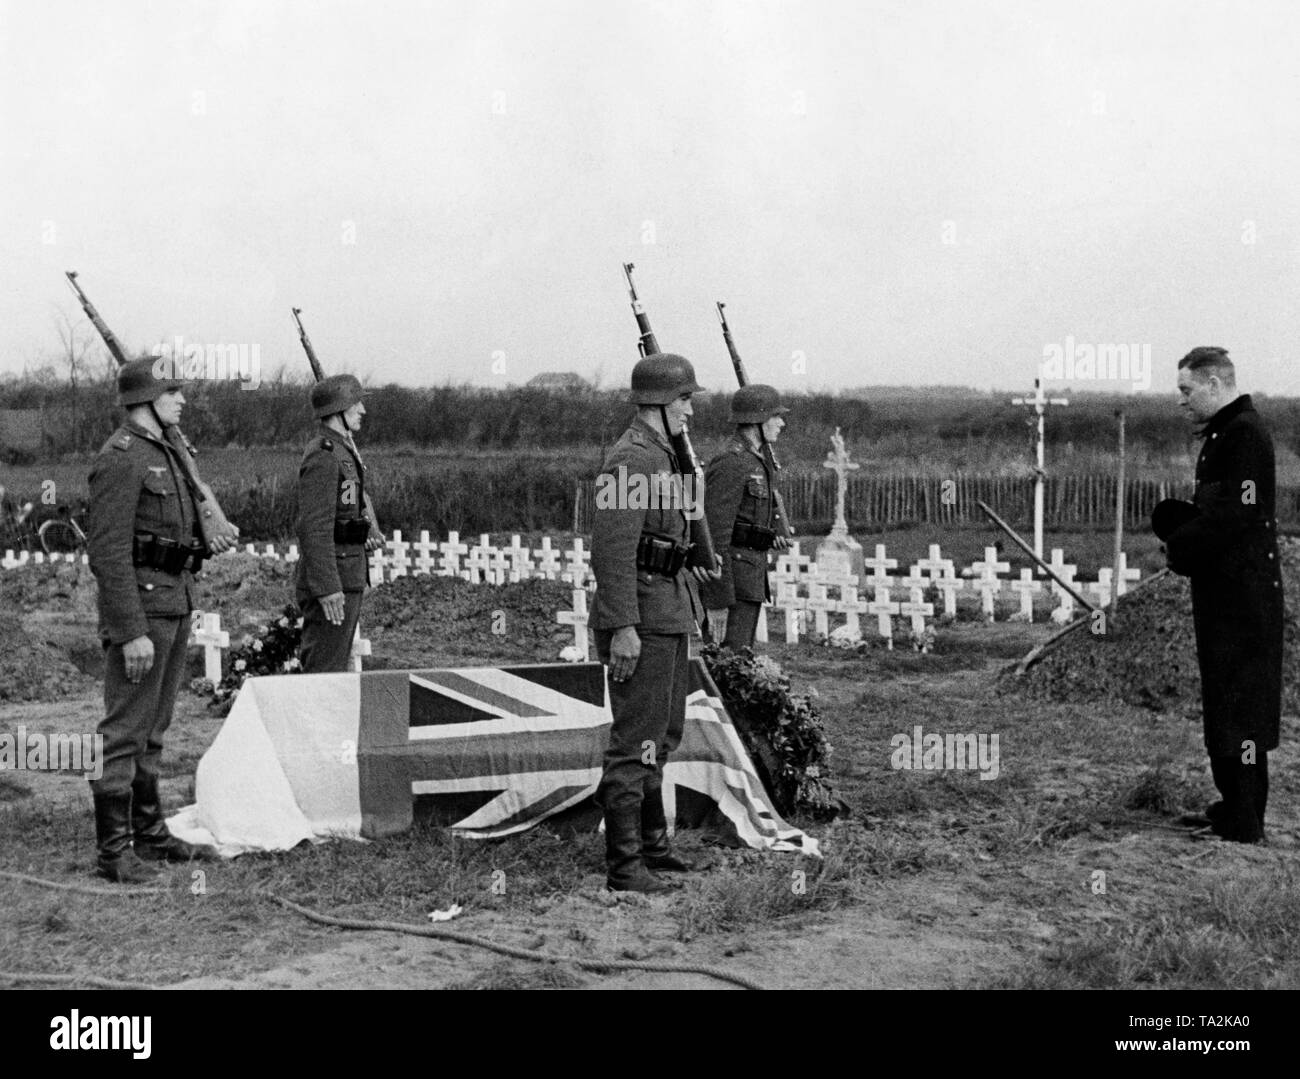 An English officer, who fell during the fighting in the north of France, was buried with military honors by German soldiers. A captured Englishman speaks a prayer. Stock Photo